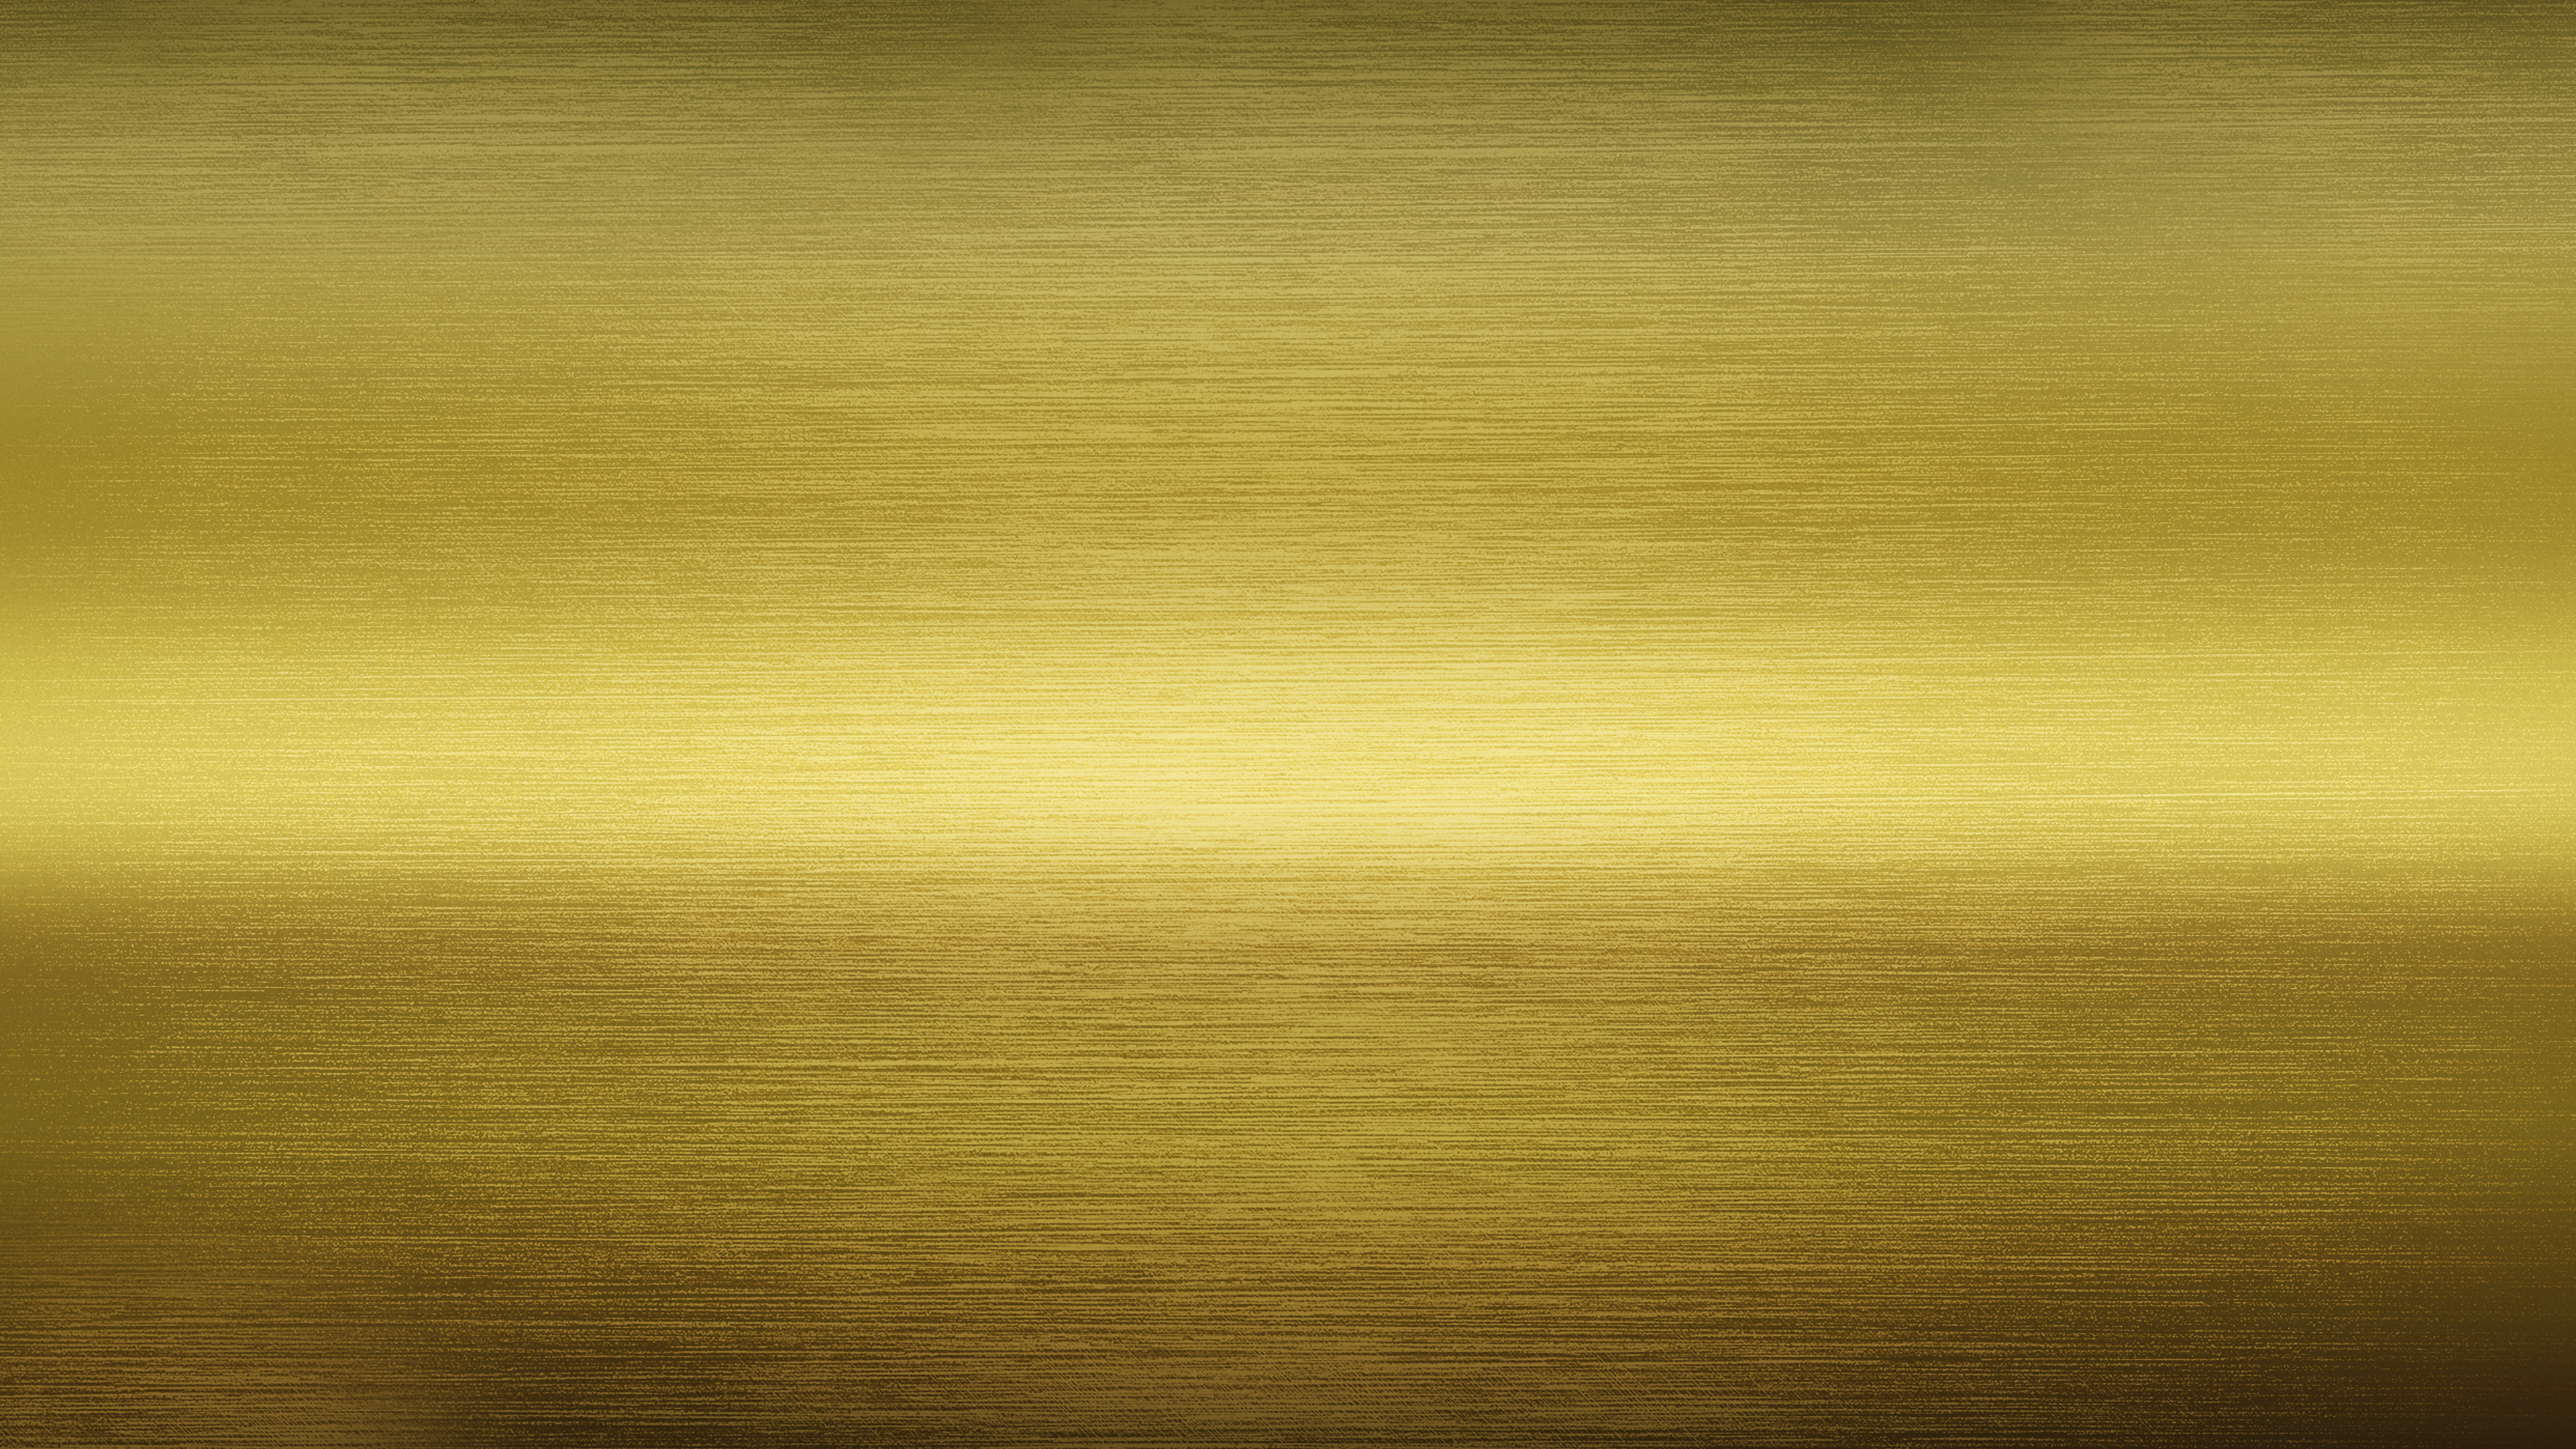 Lock Screen Wallpaper Hd Free Brushed Gold Chromebook Wallpaper Ready For Download